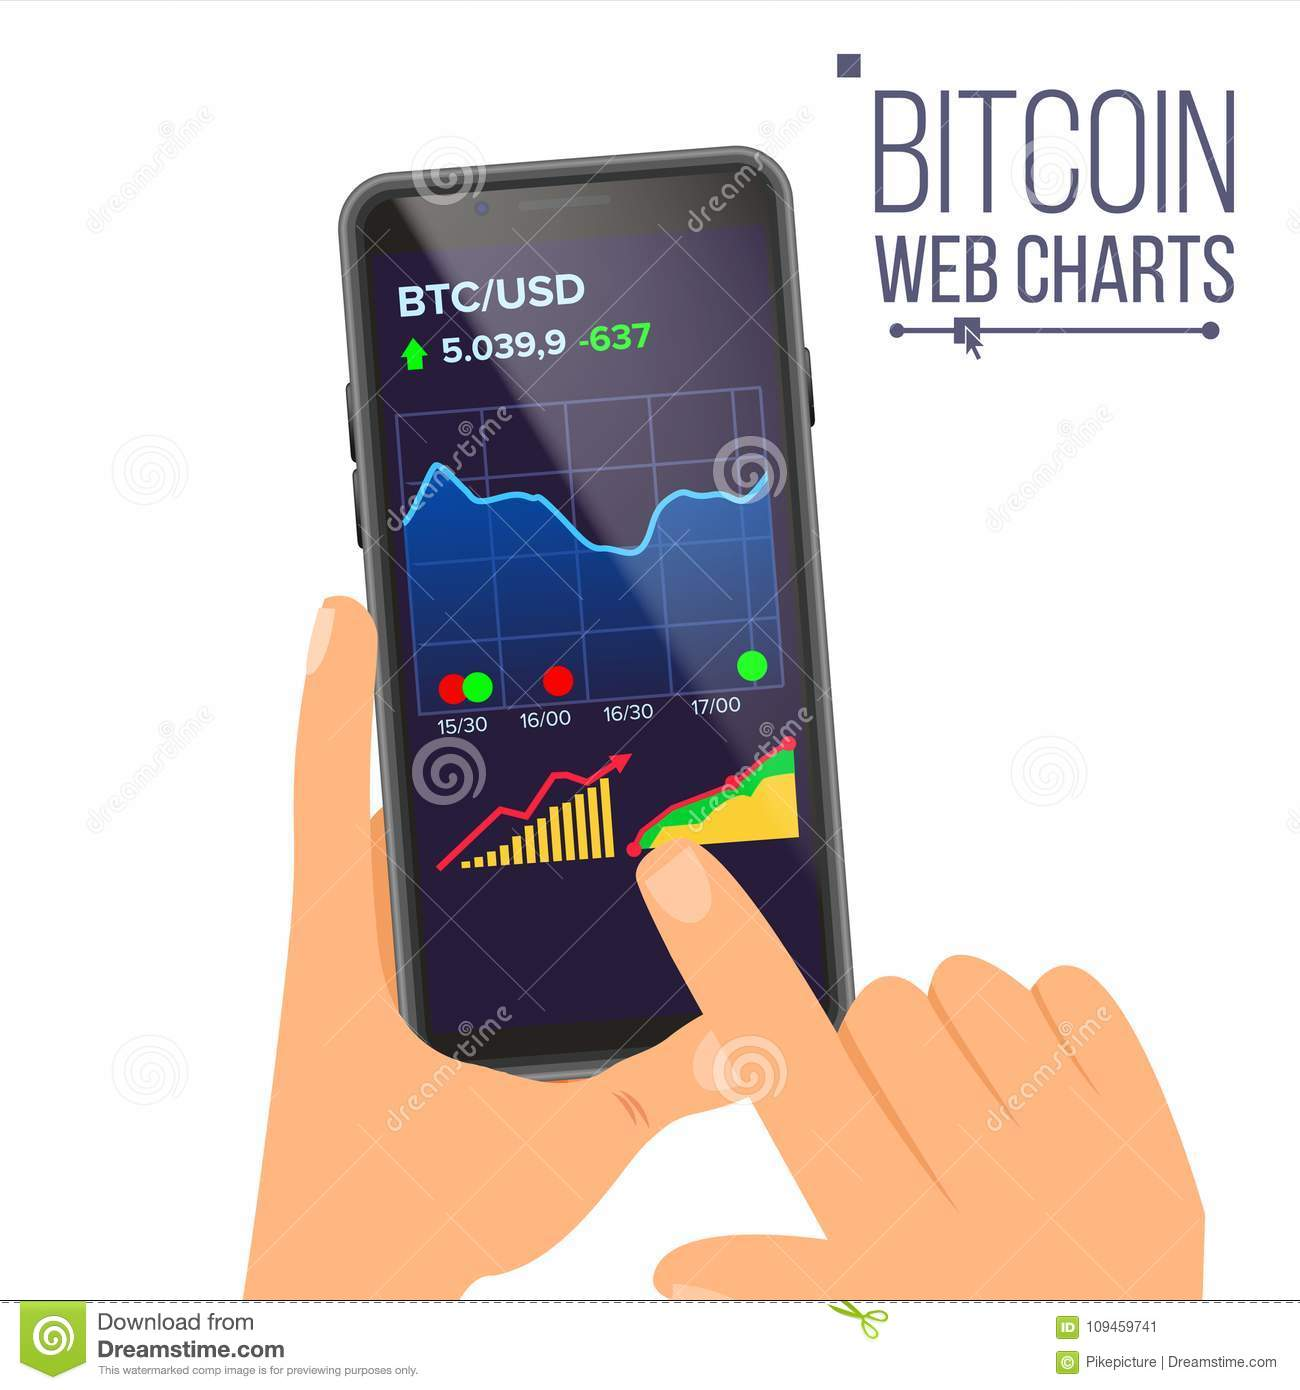 Bitcoin investment app in india